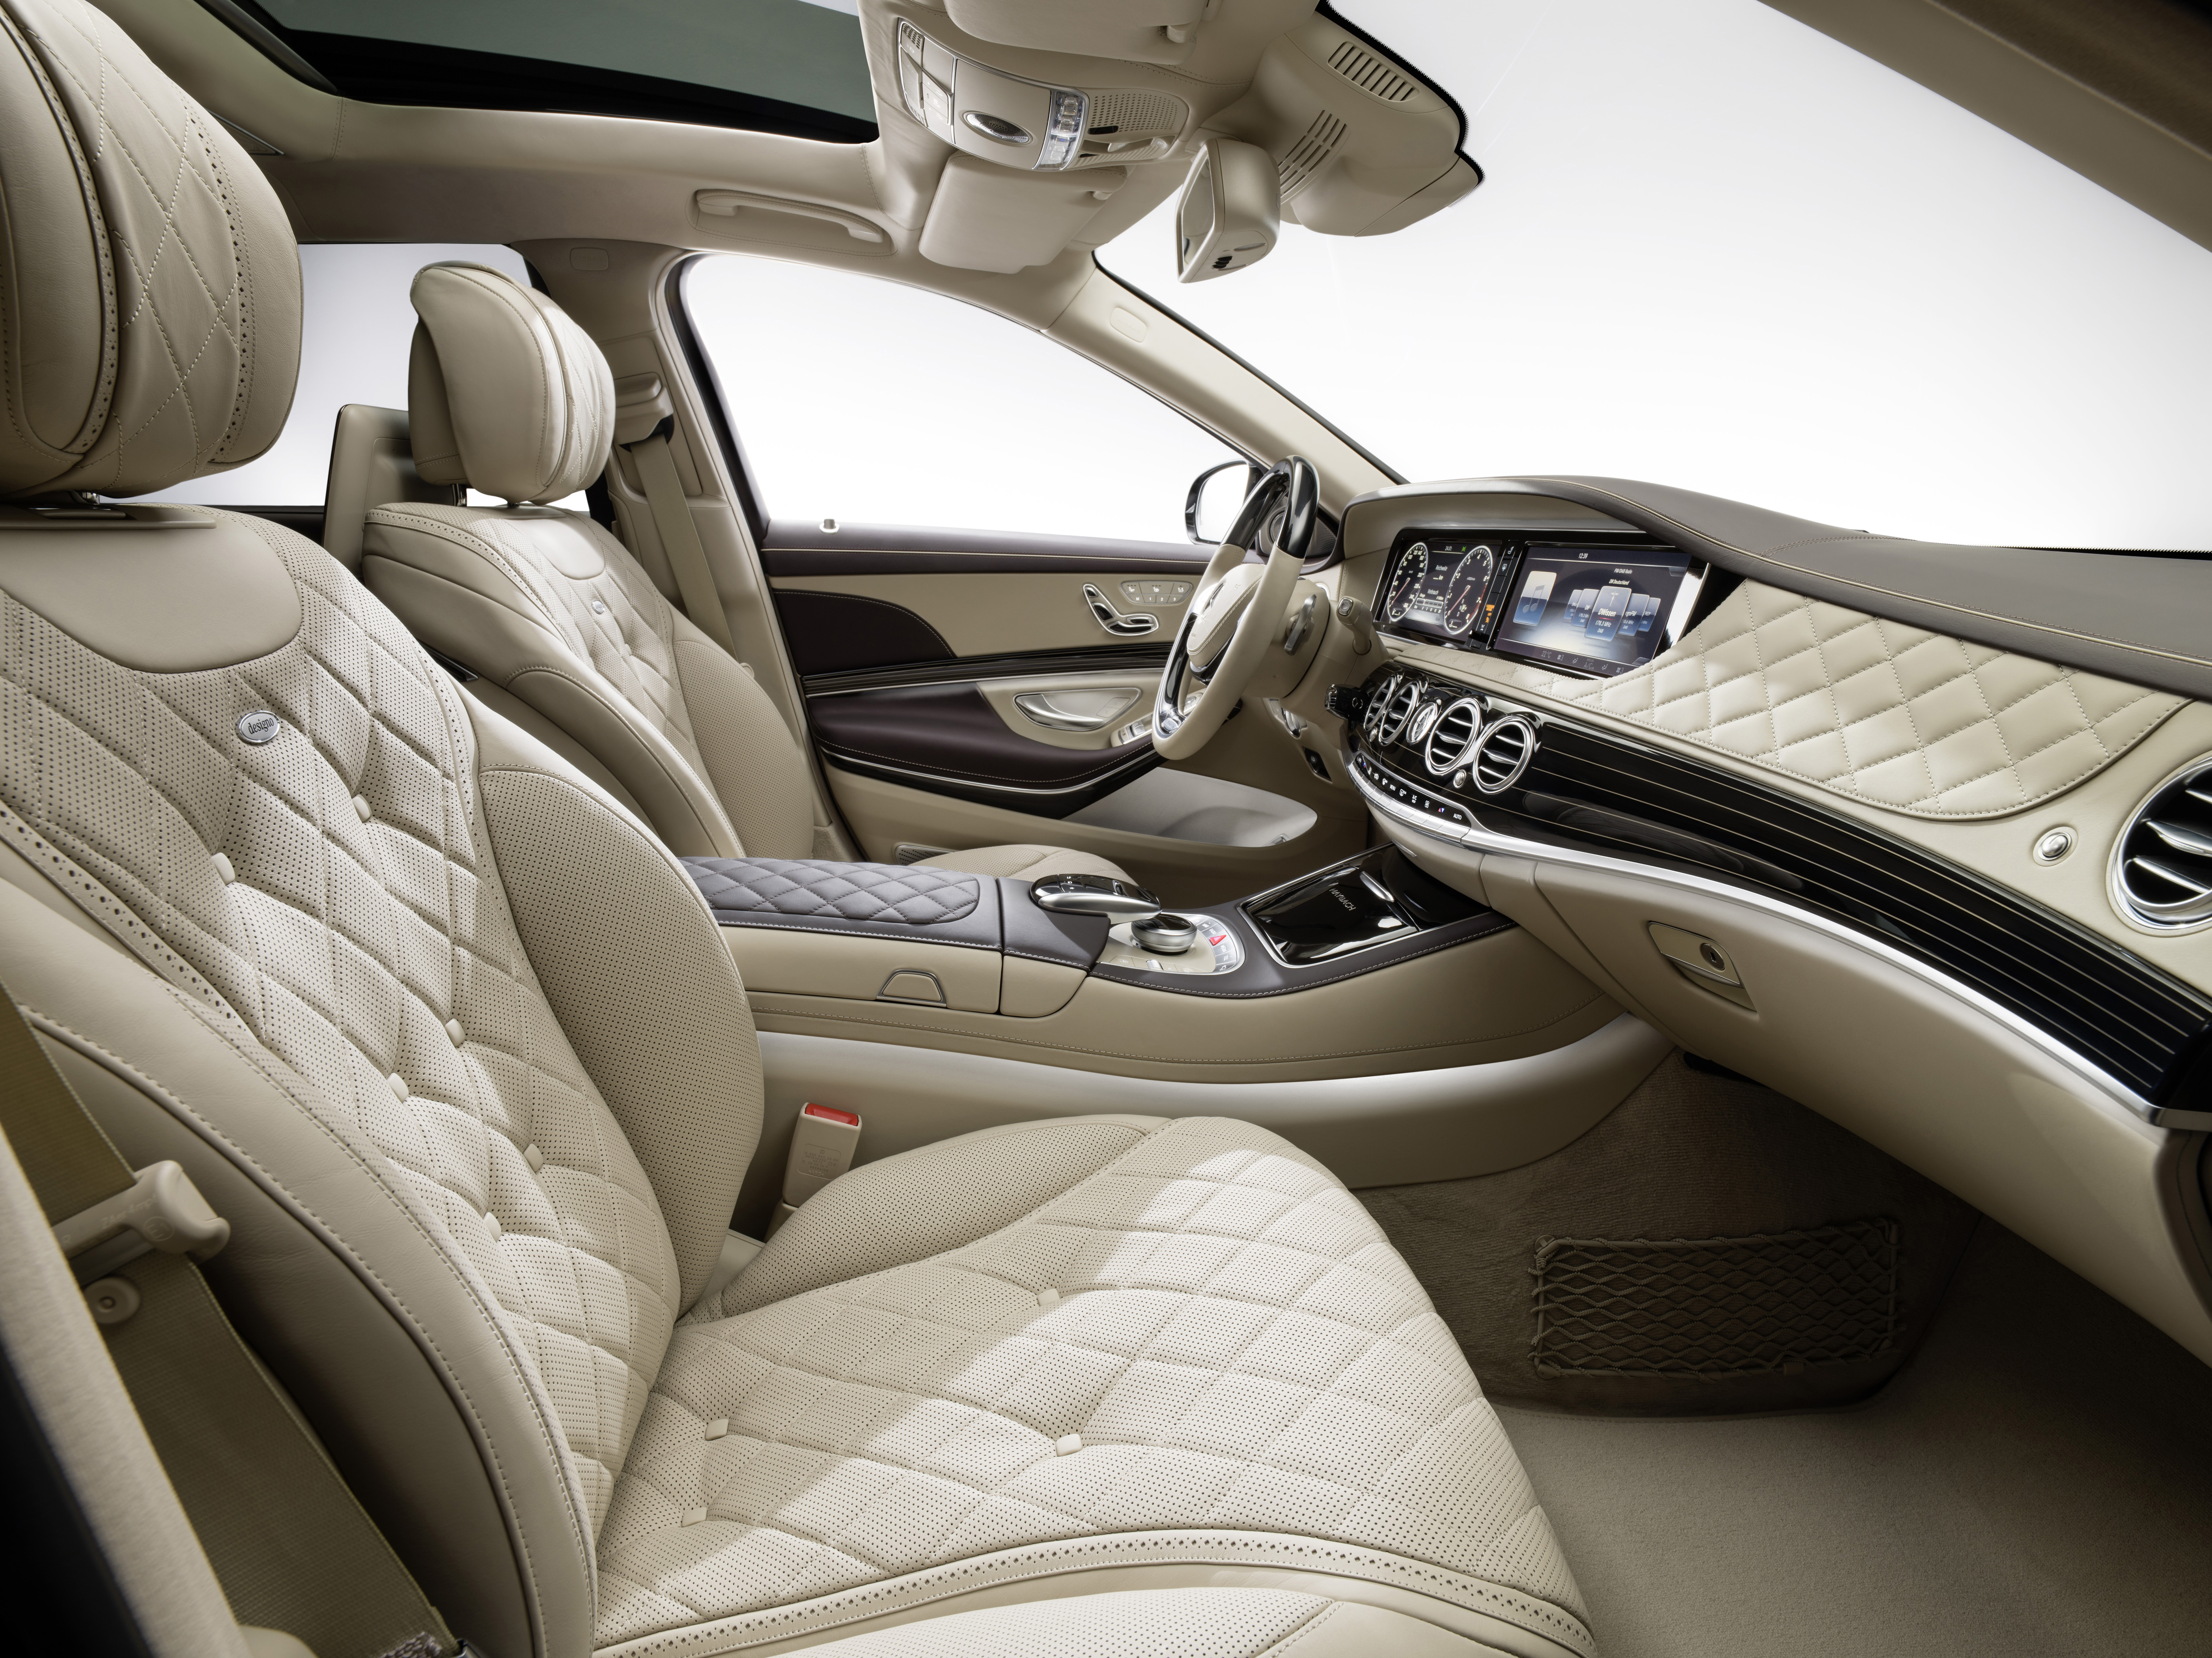 Mercedes Benz Maybach #5